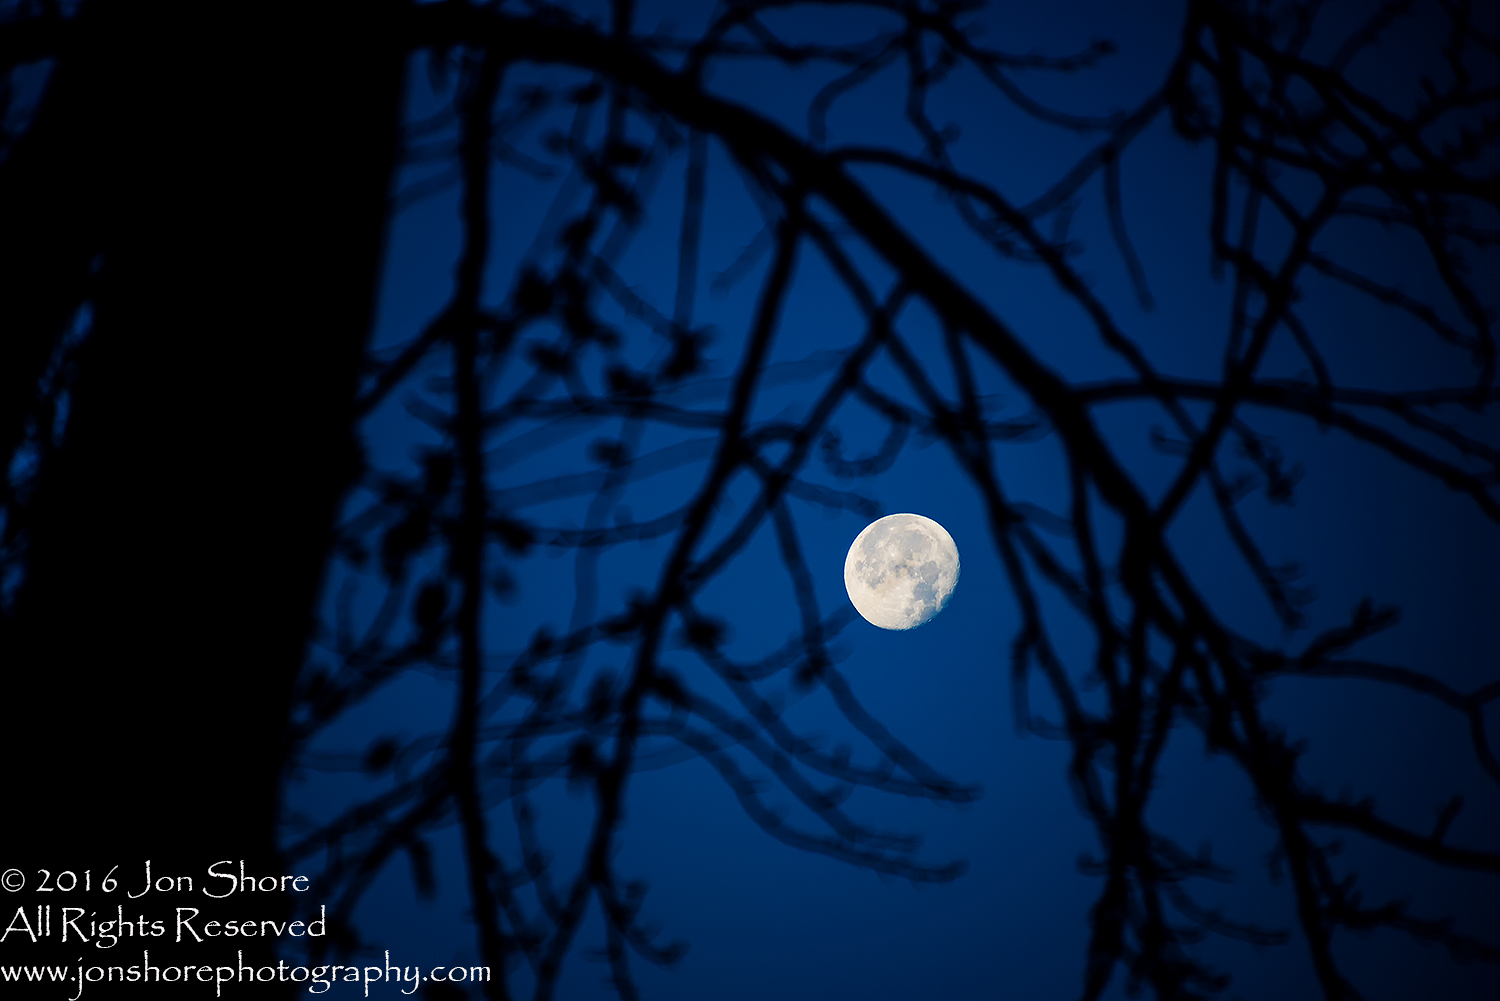 Moon and Tree. Nikkor 300mm